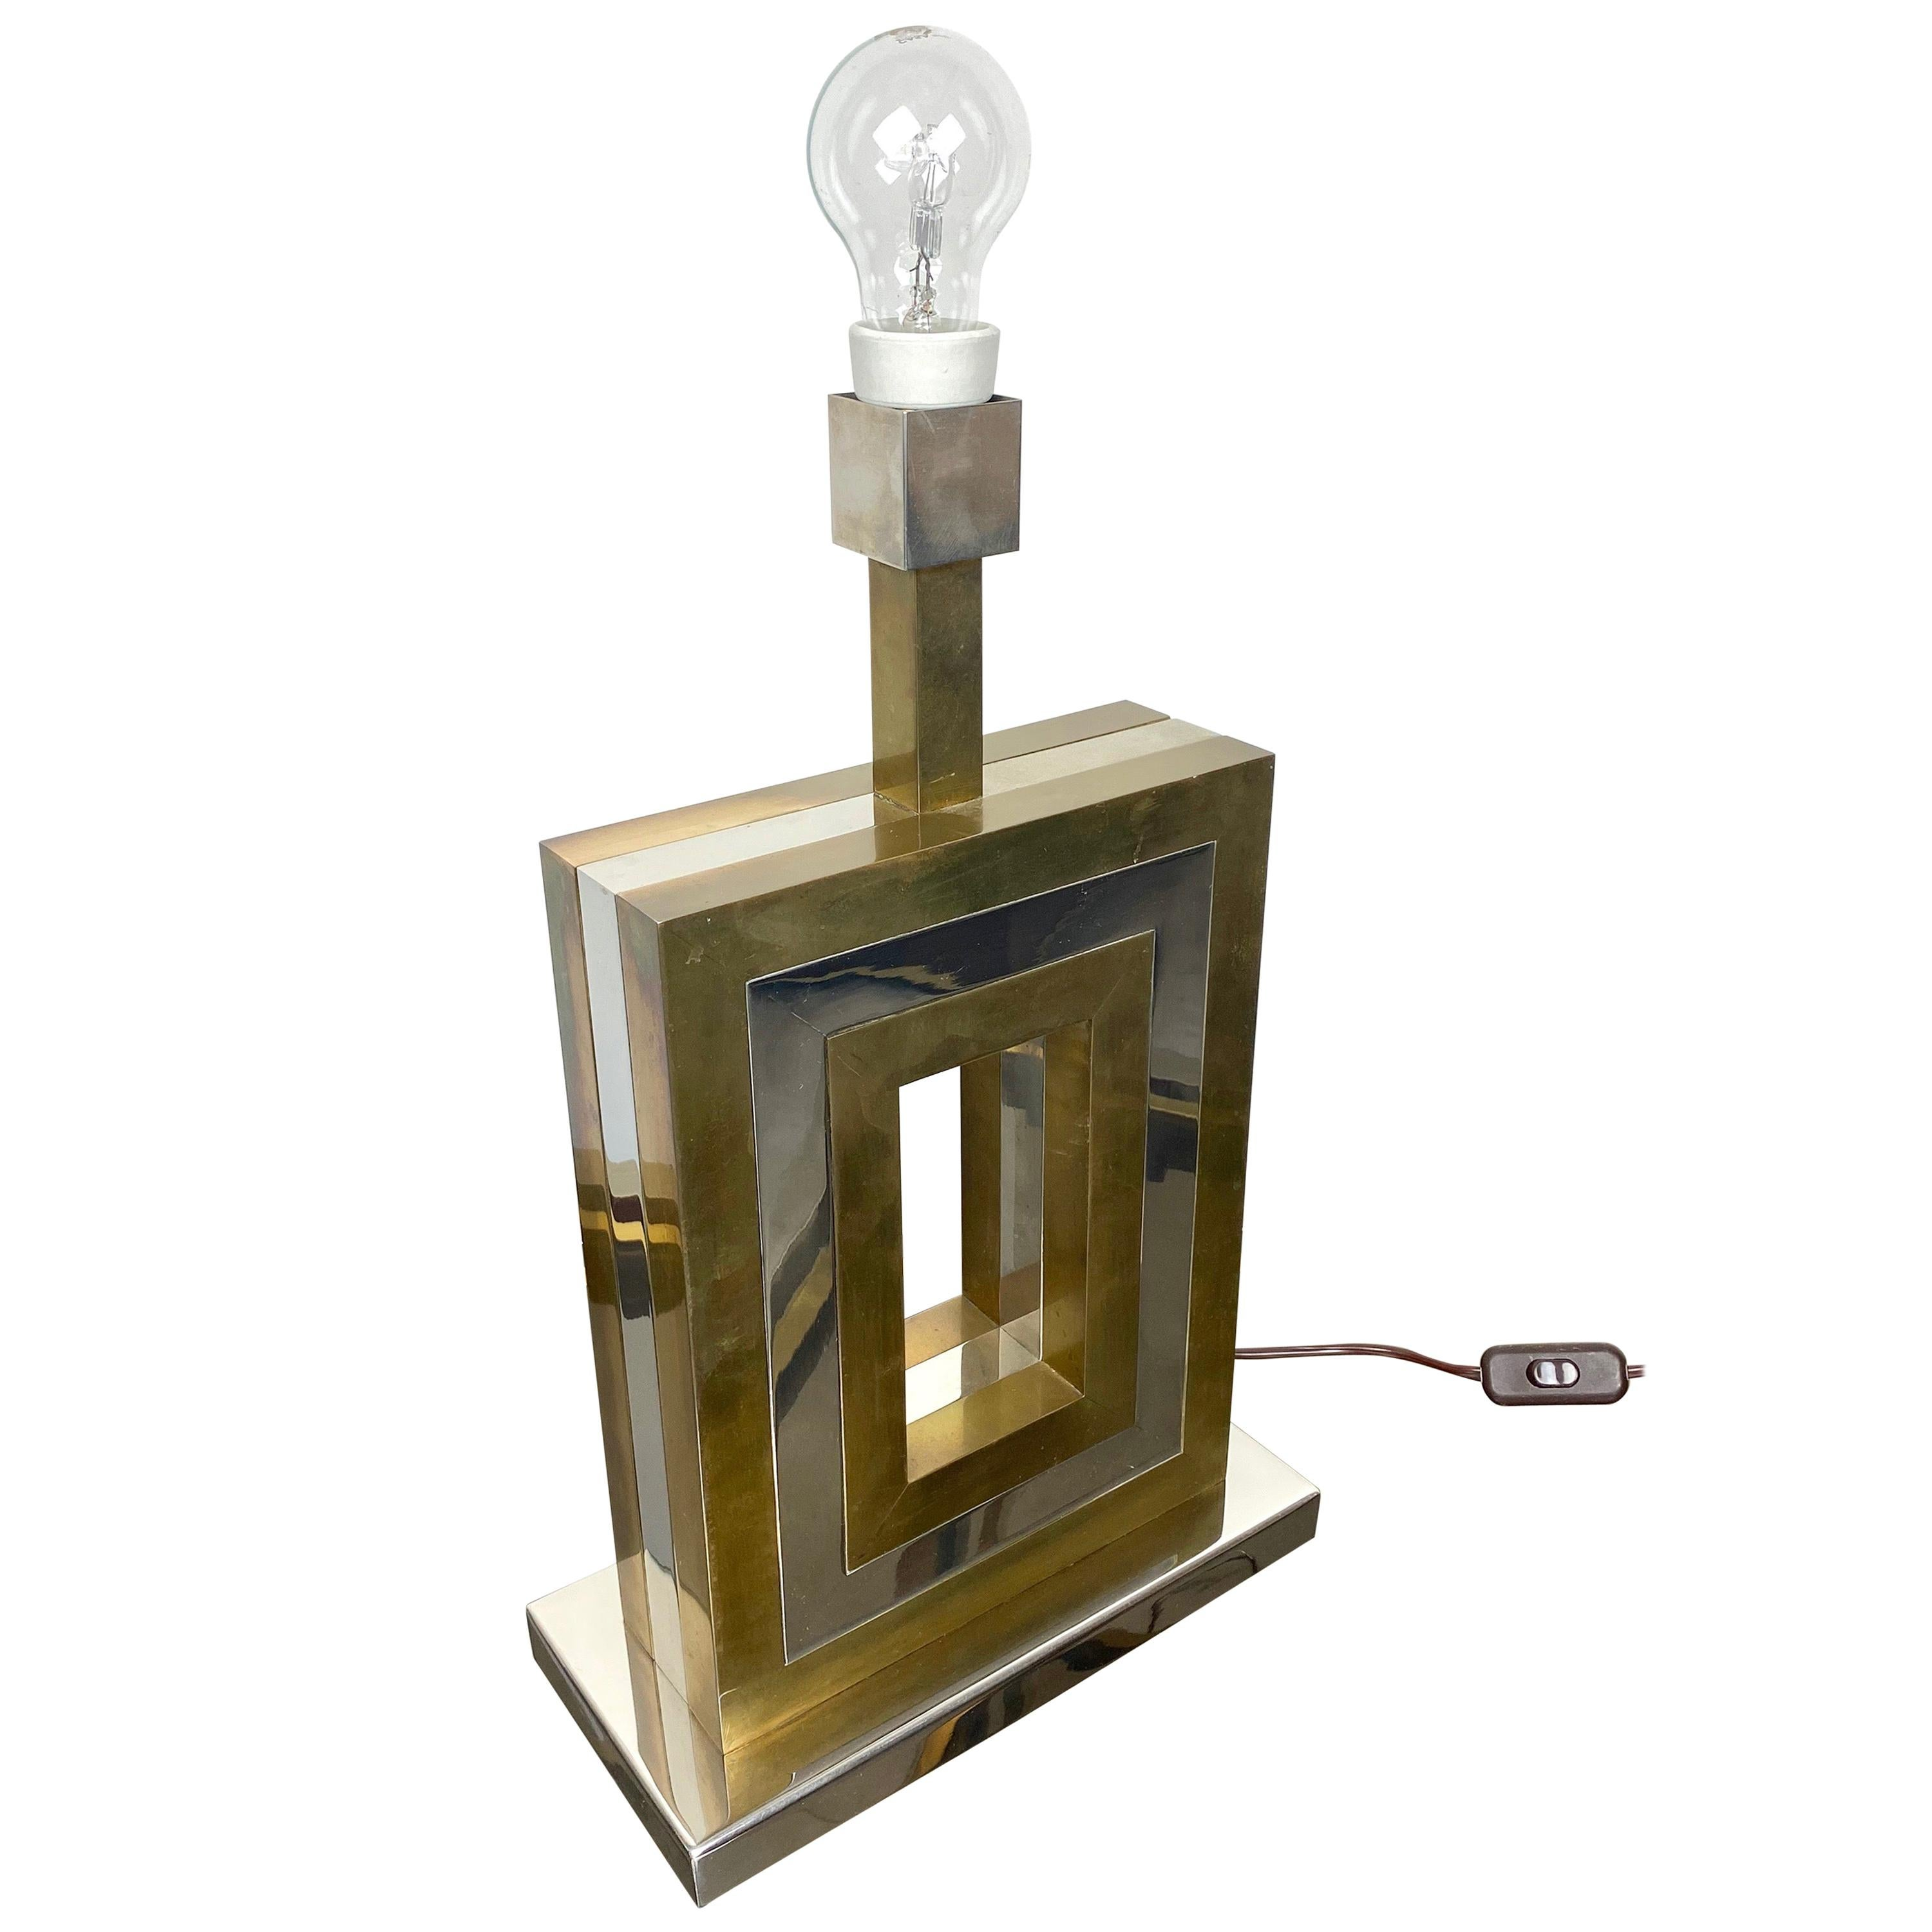 Rectangular Table Lamp in Brass and Chrome, Romeo Rega style, Italy, 1970s